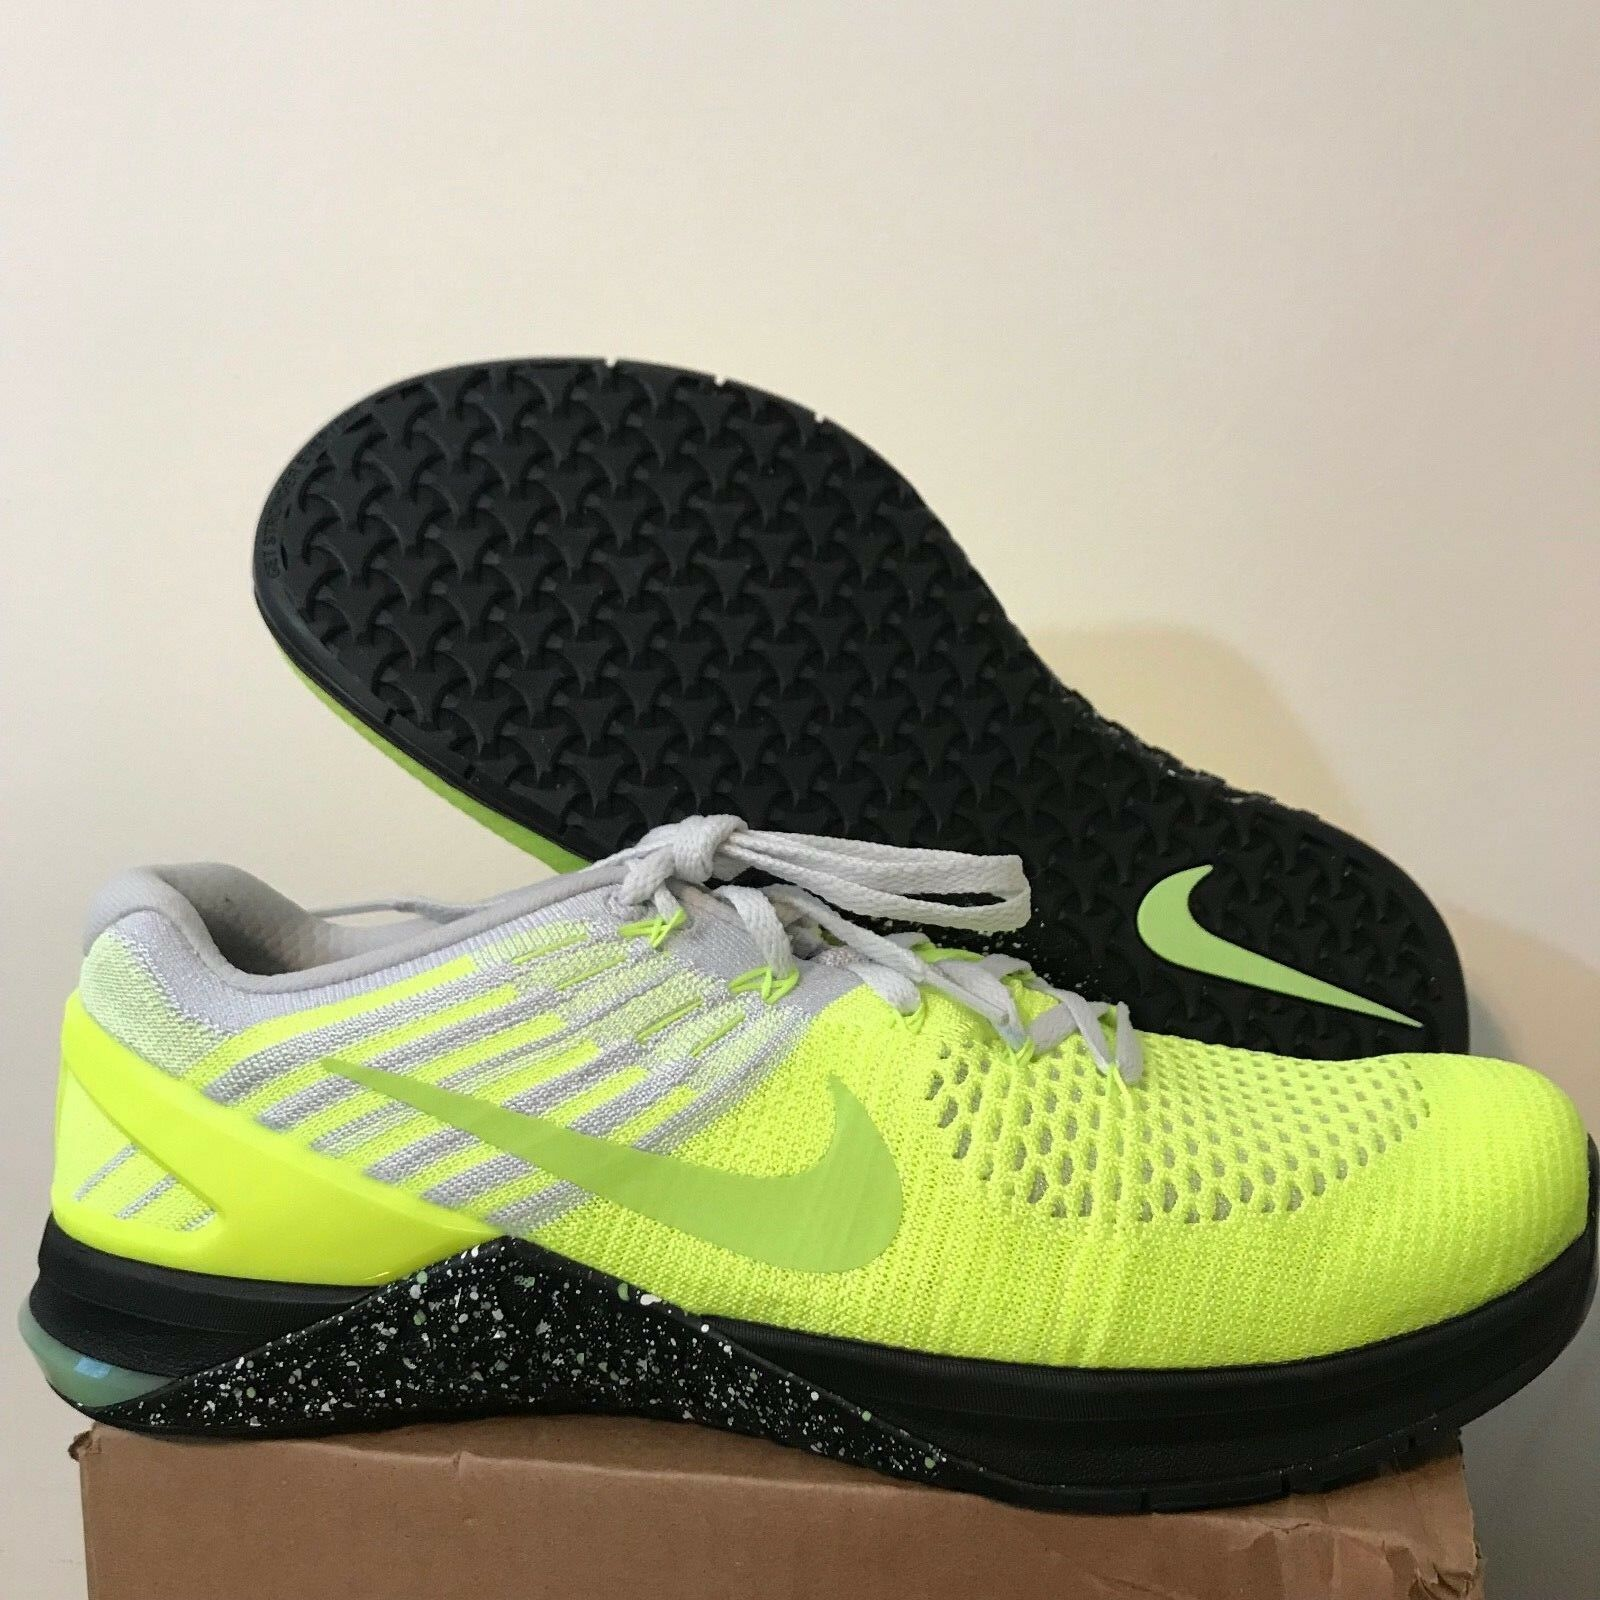 Nike Metcon DSX Flyknit Training Shoes Volt Ghost Green Black 852930-701